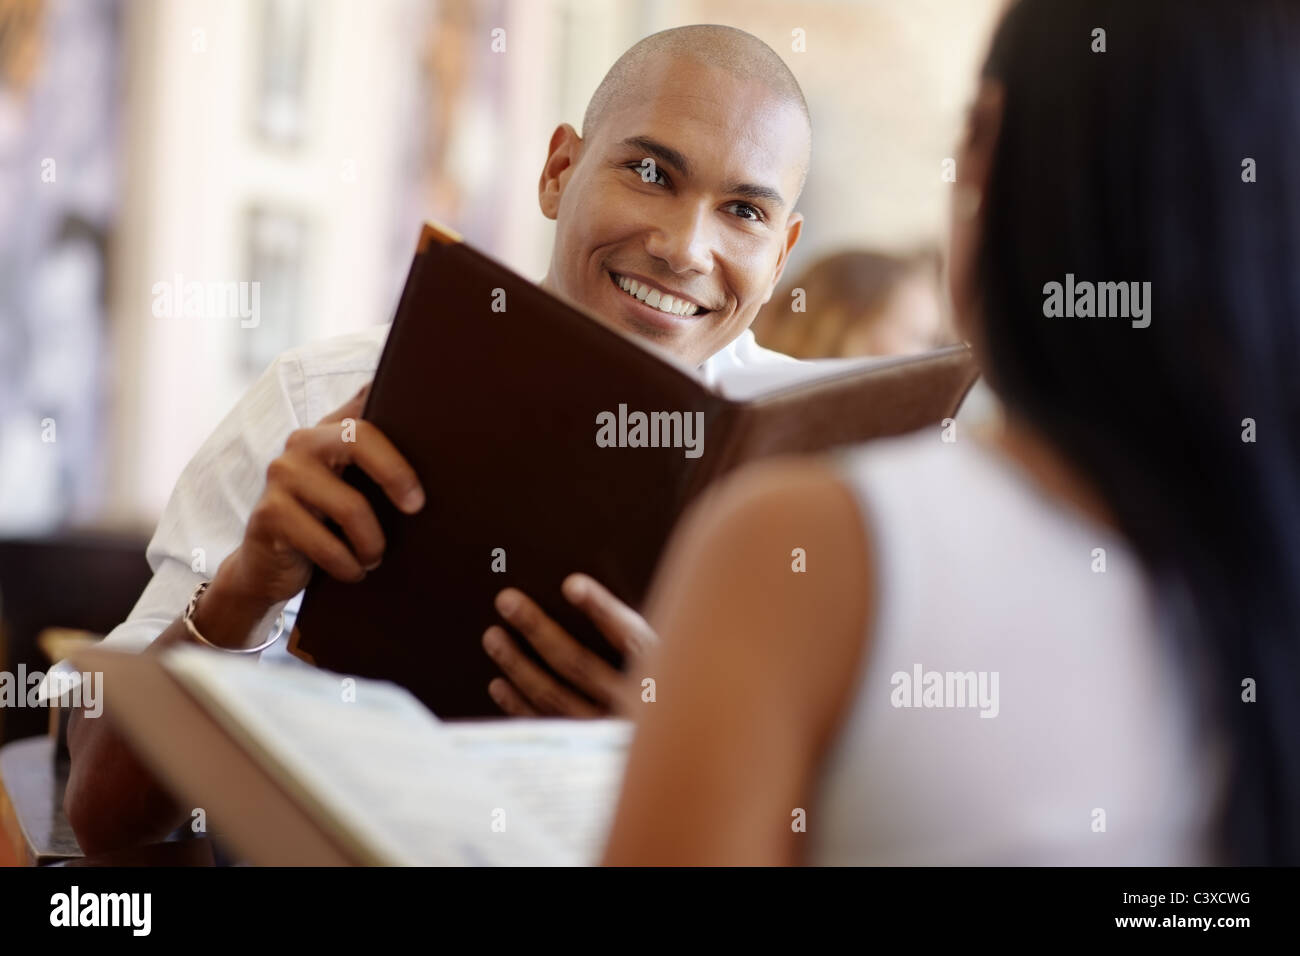 young adult hispanic couple dining out in restaurant and reading menu. Horizontal shape, waist up, focus on background - Stock Image